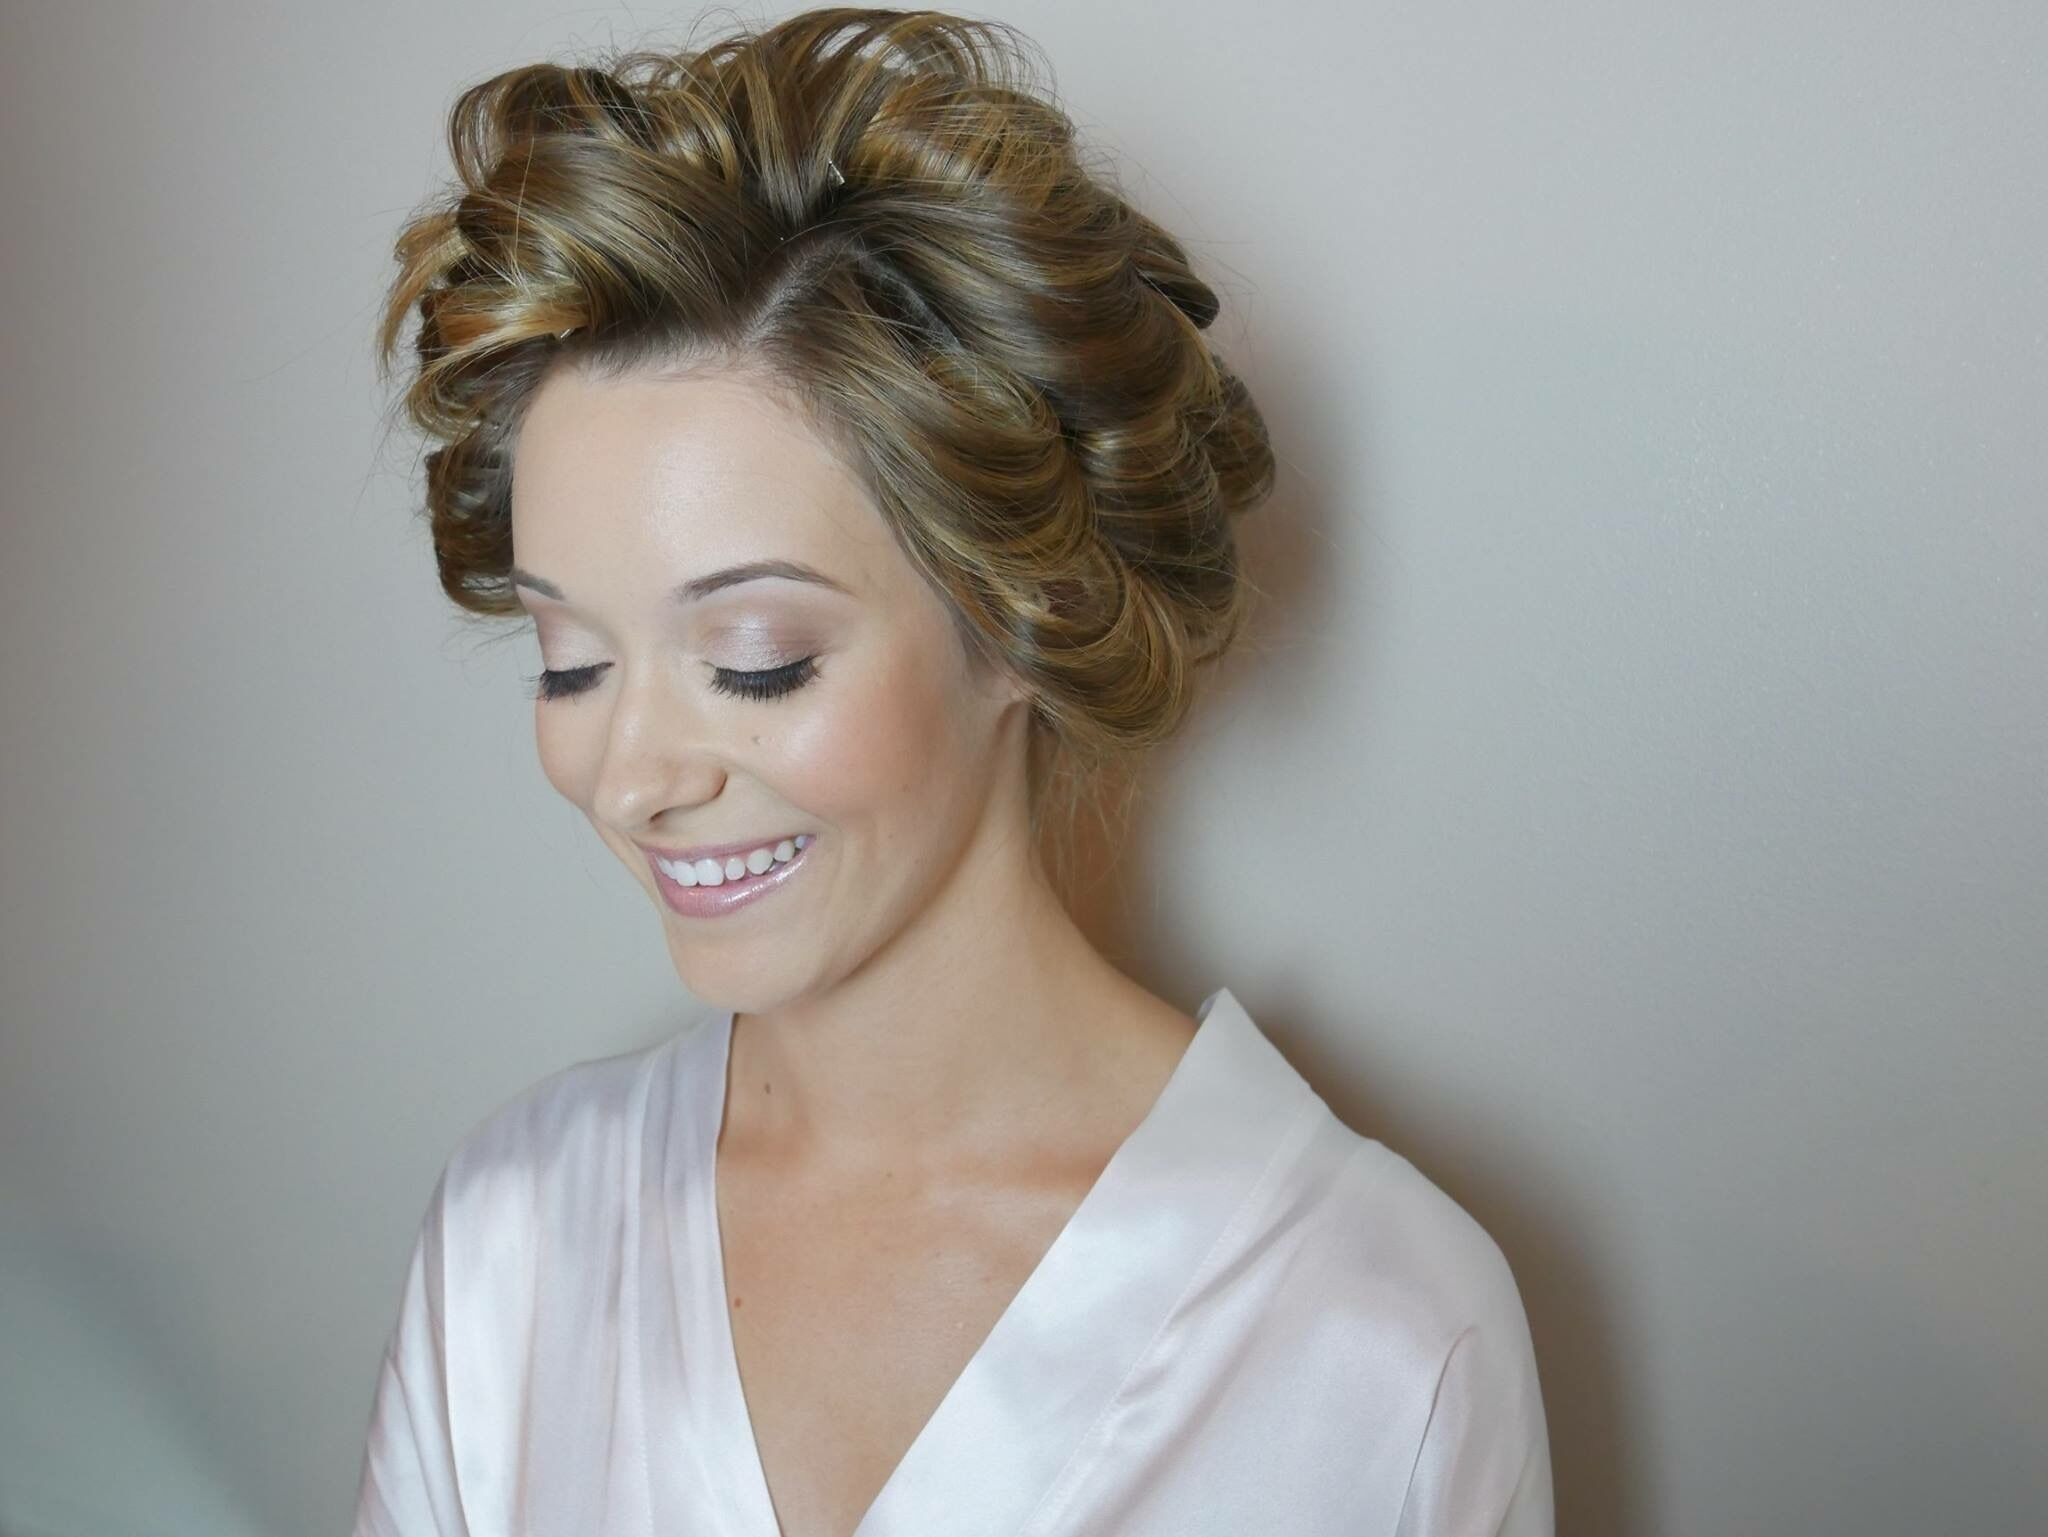 beauty salons in lancaster, pa - the knot